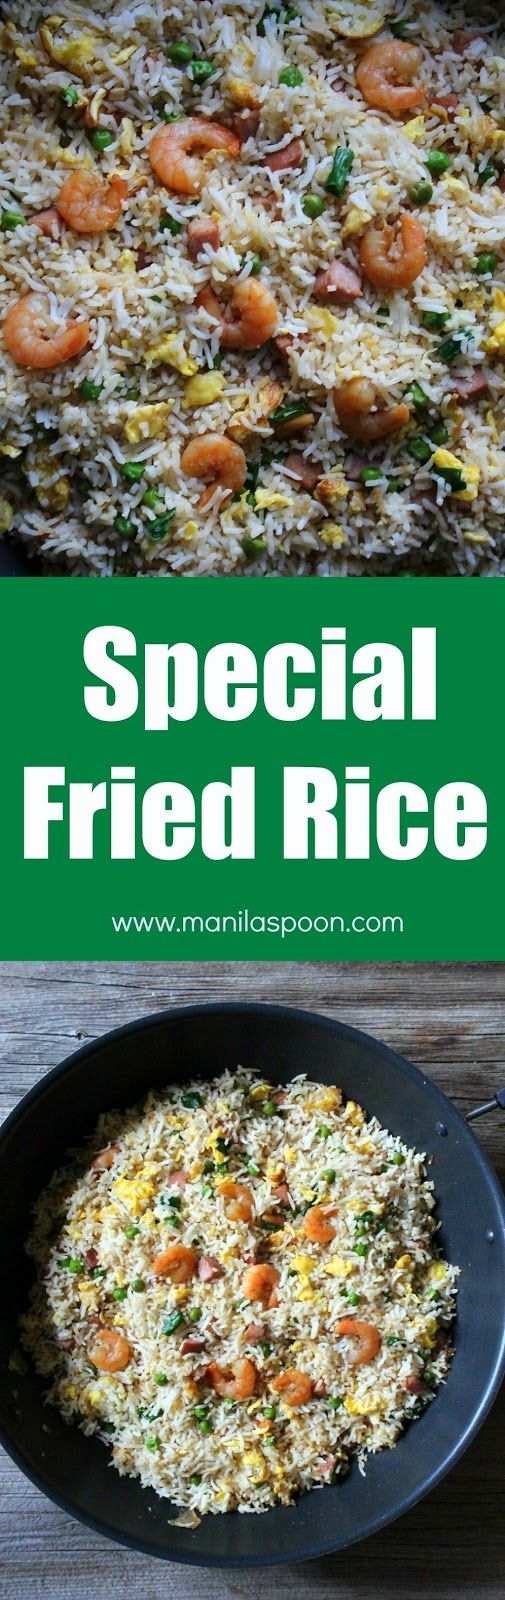 Quick, easy and delicious way to make your favorite take-away - Chinese Special Fried Rice. | Manilaspoon.com